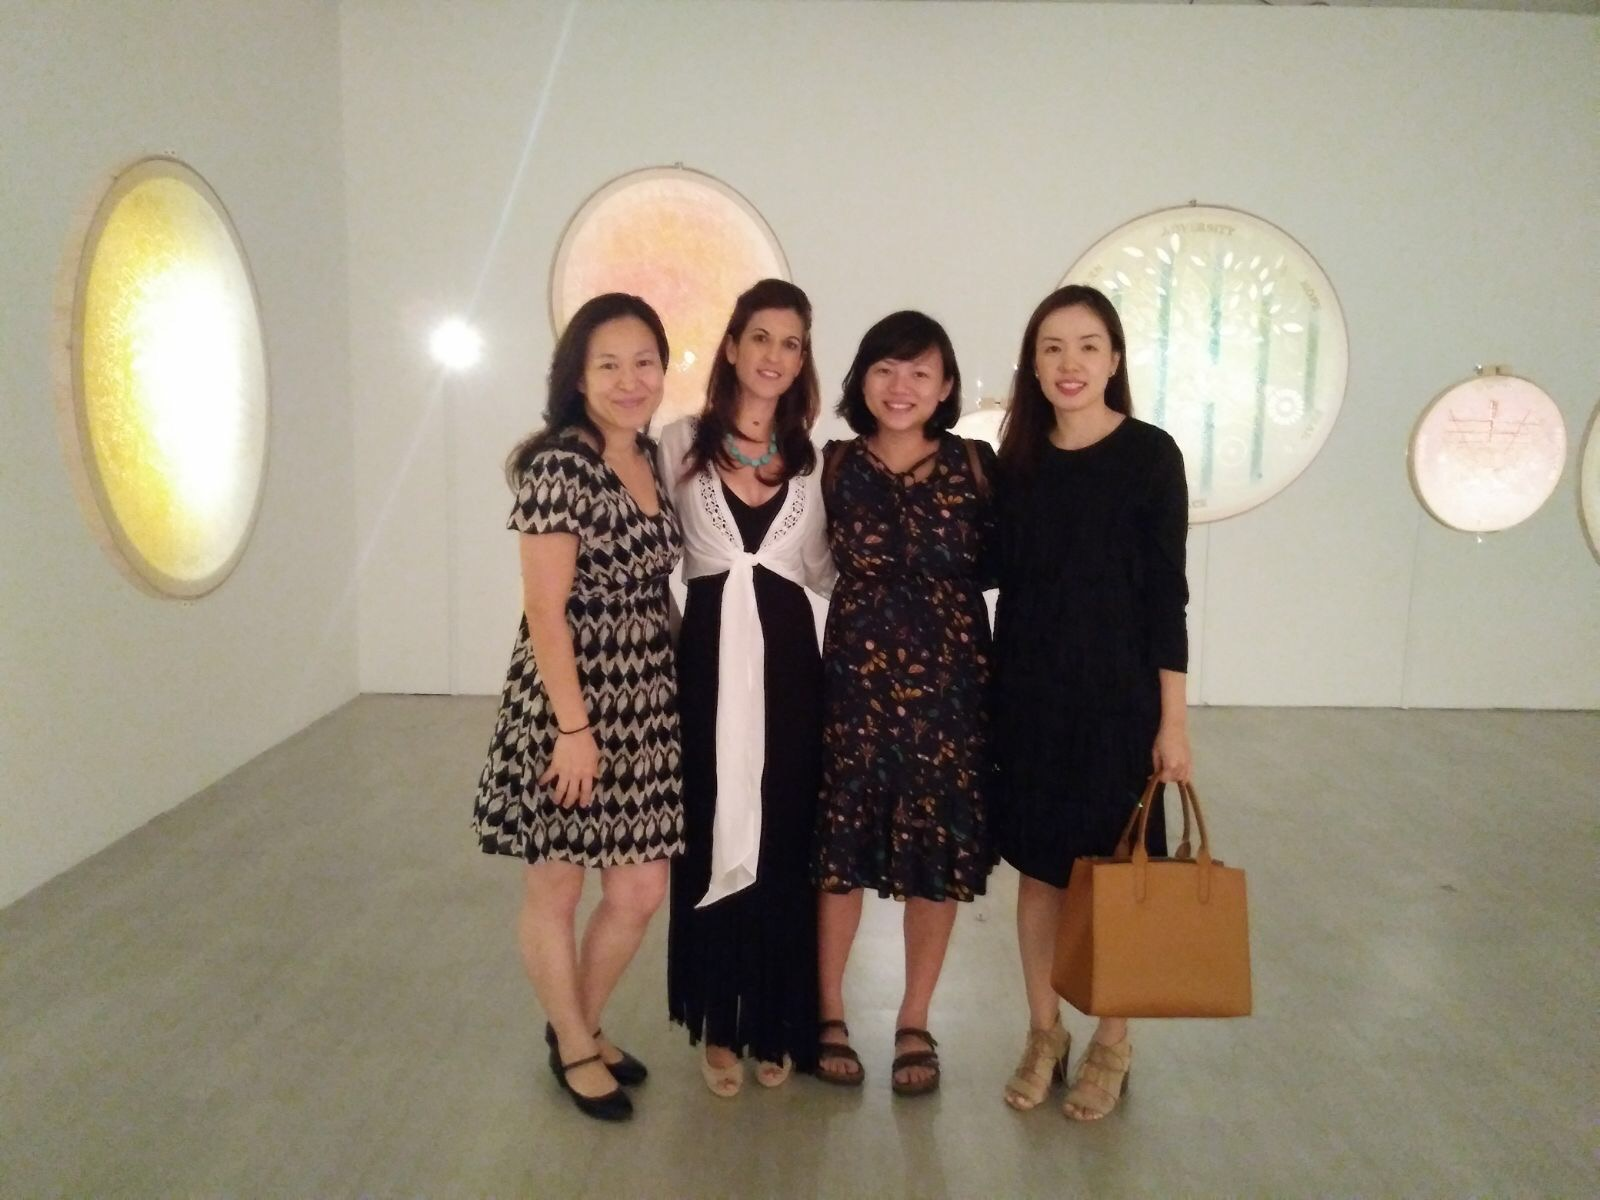 SOLO EXHIBITION OPENING_NICOLA ANTHONY_SINGAPORE ART MUSEUM 1.JPG